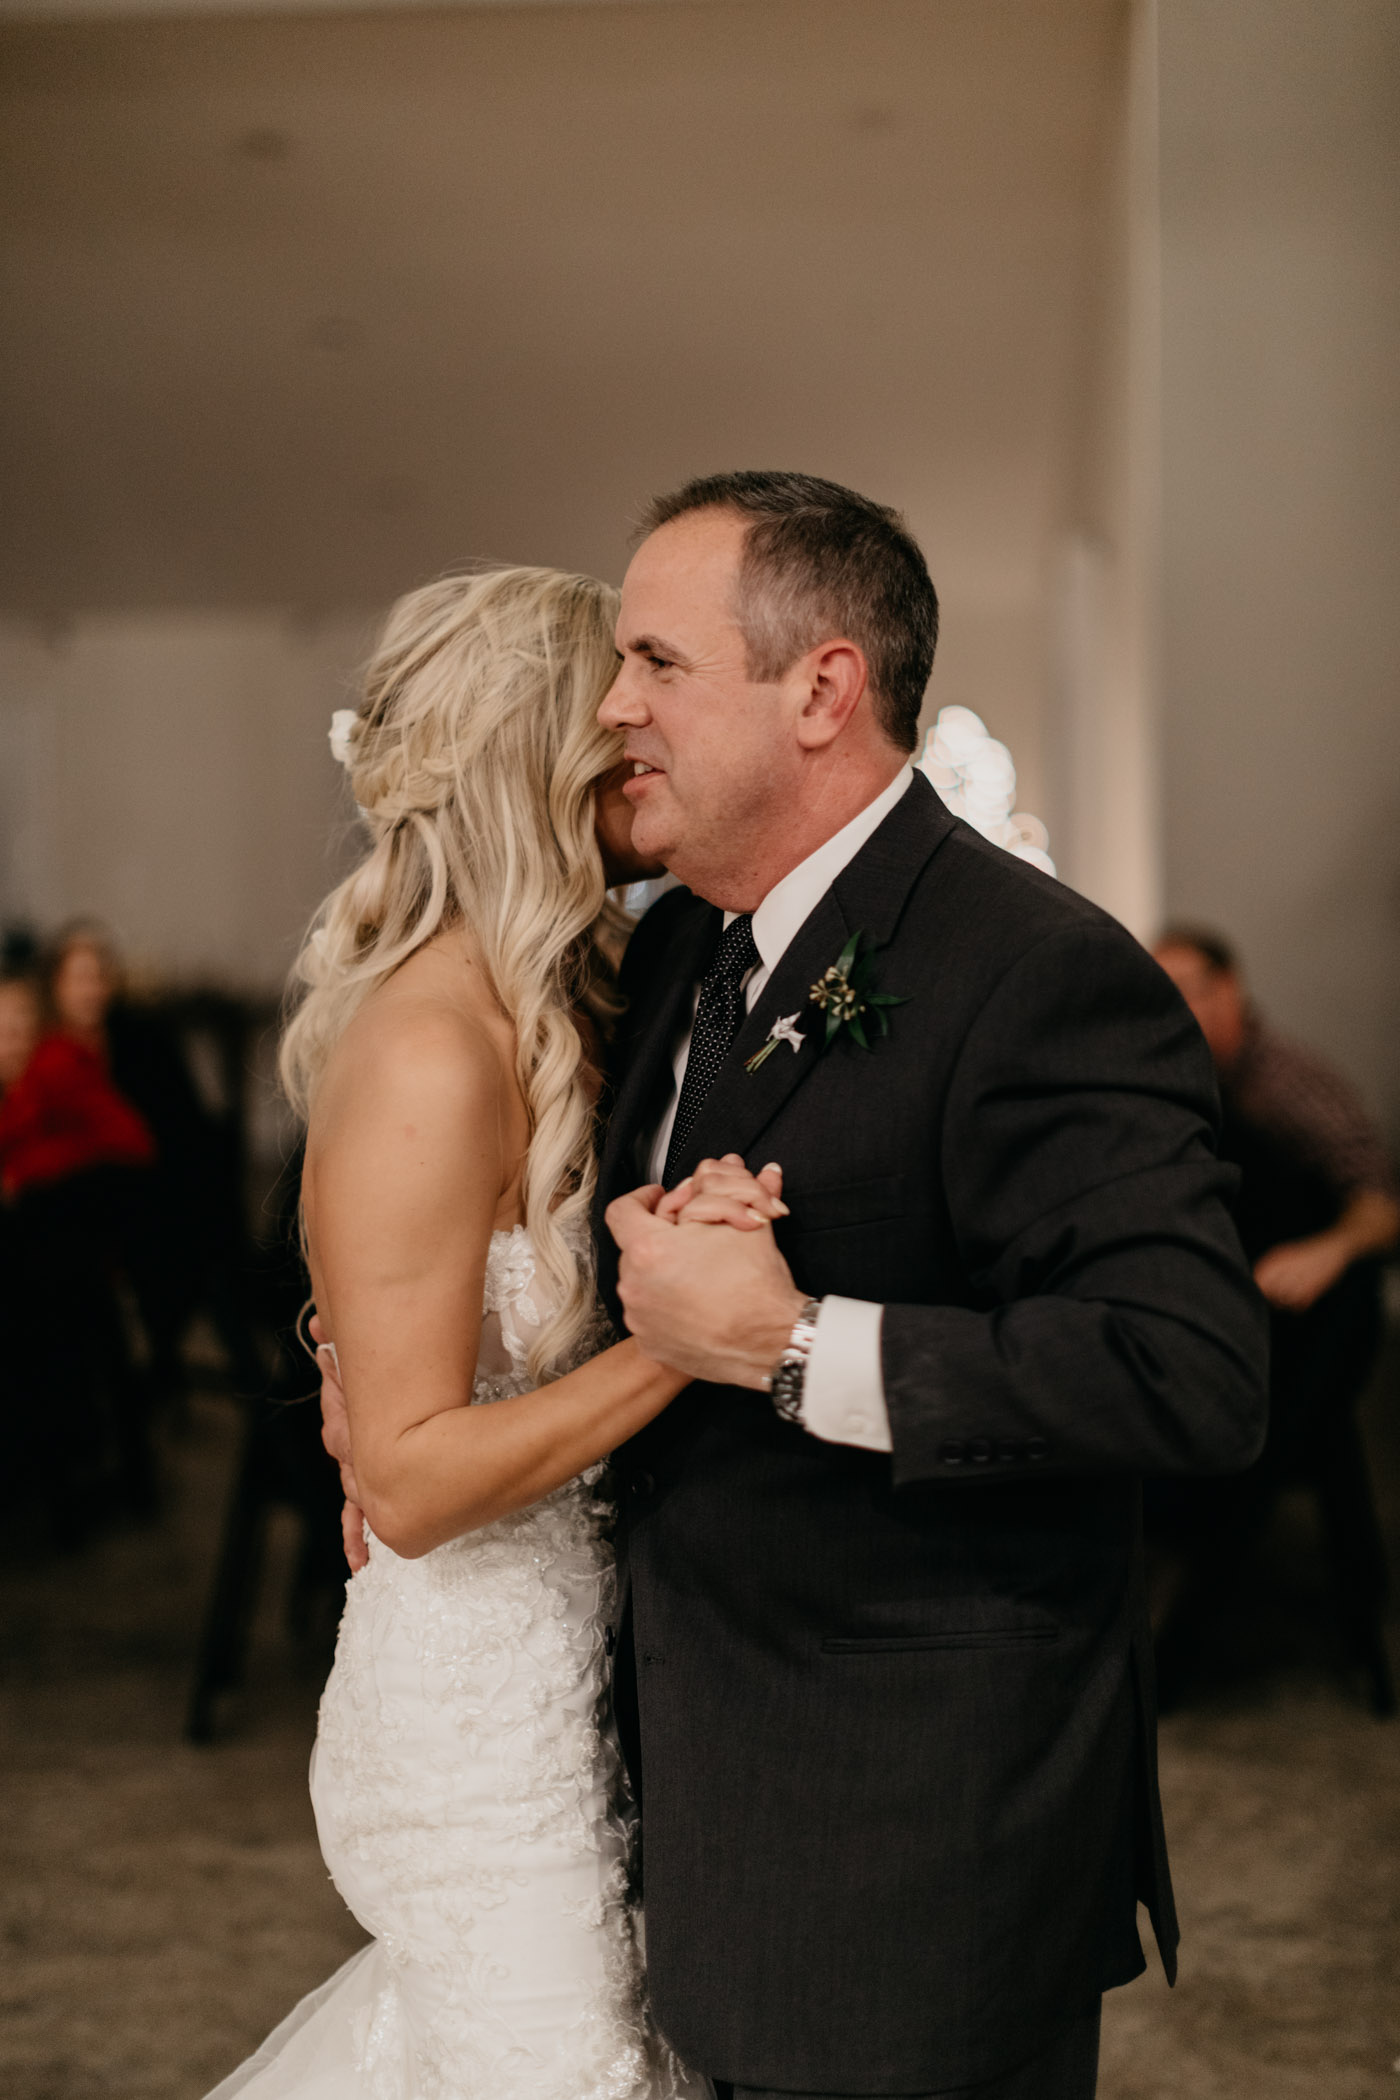 brides dad dancing with her during wedding reception